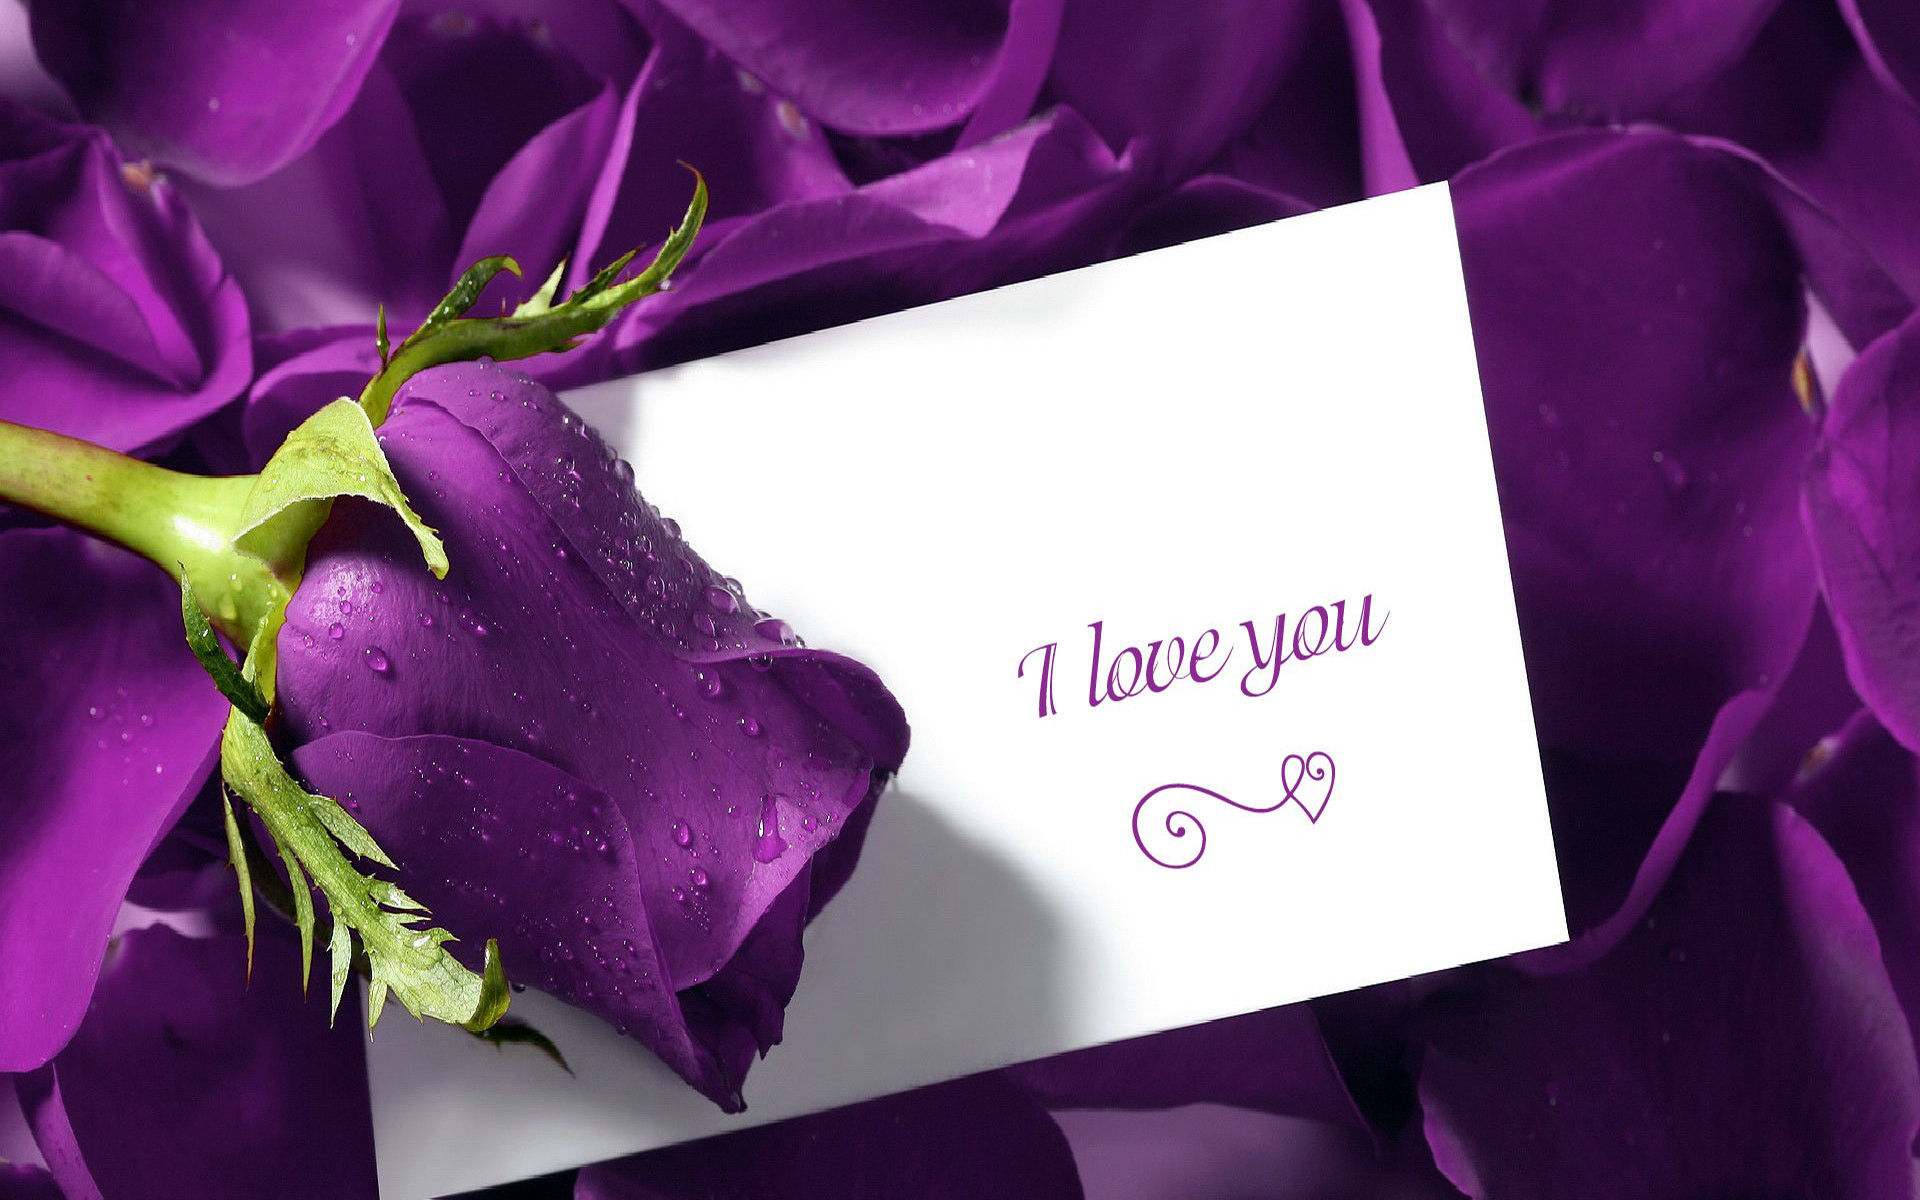 i love you cute images